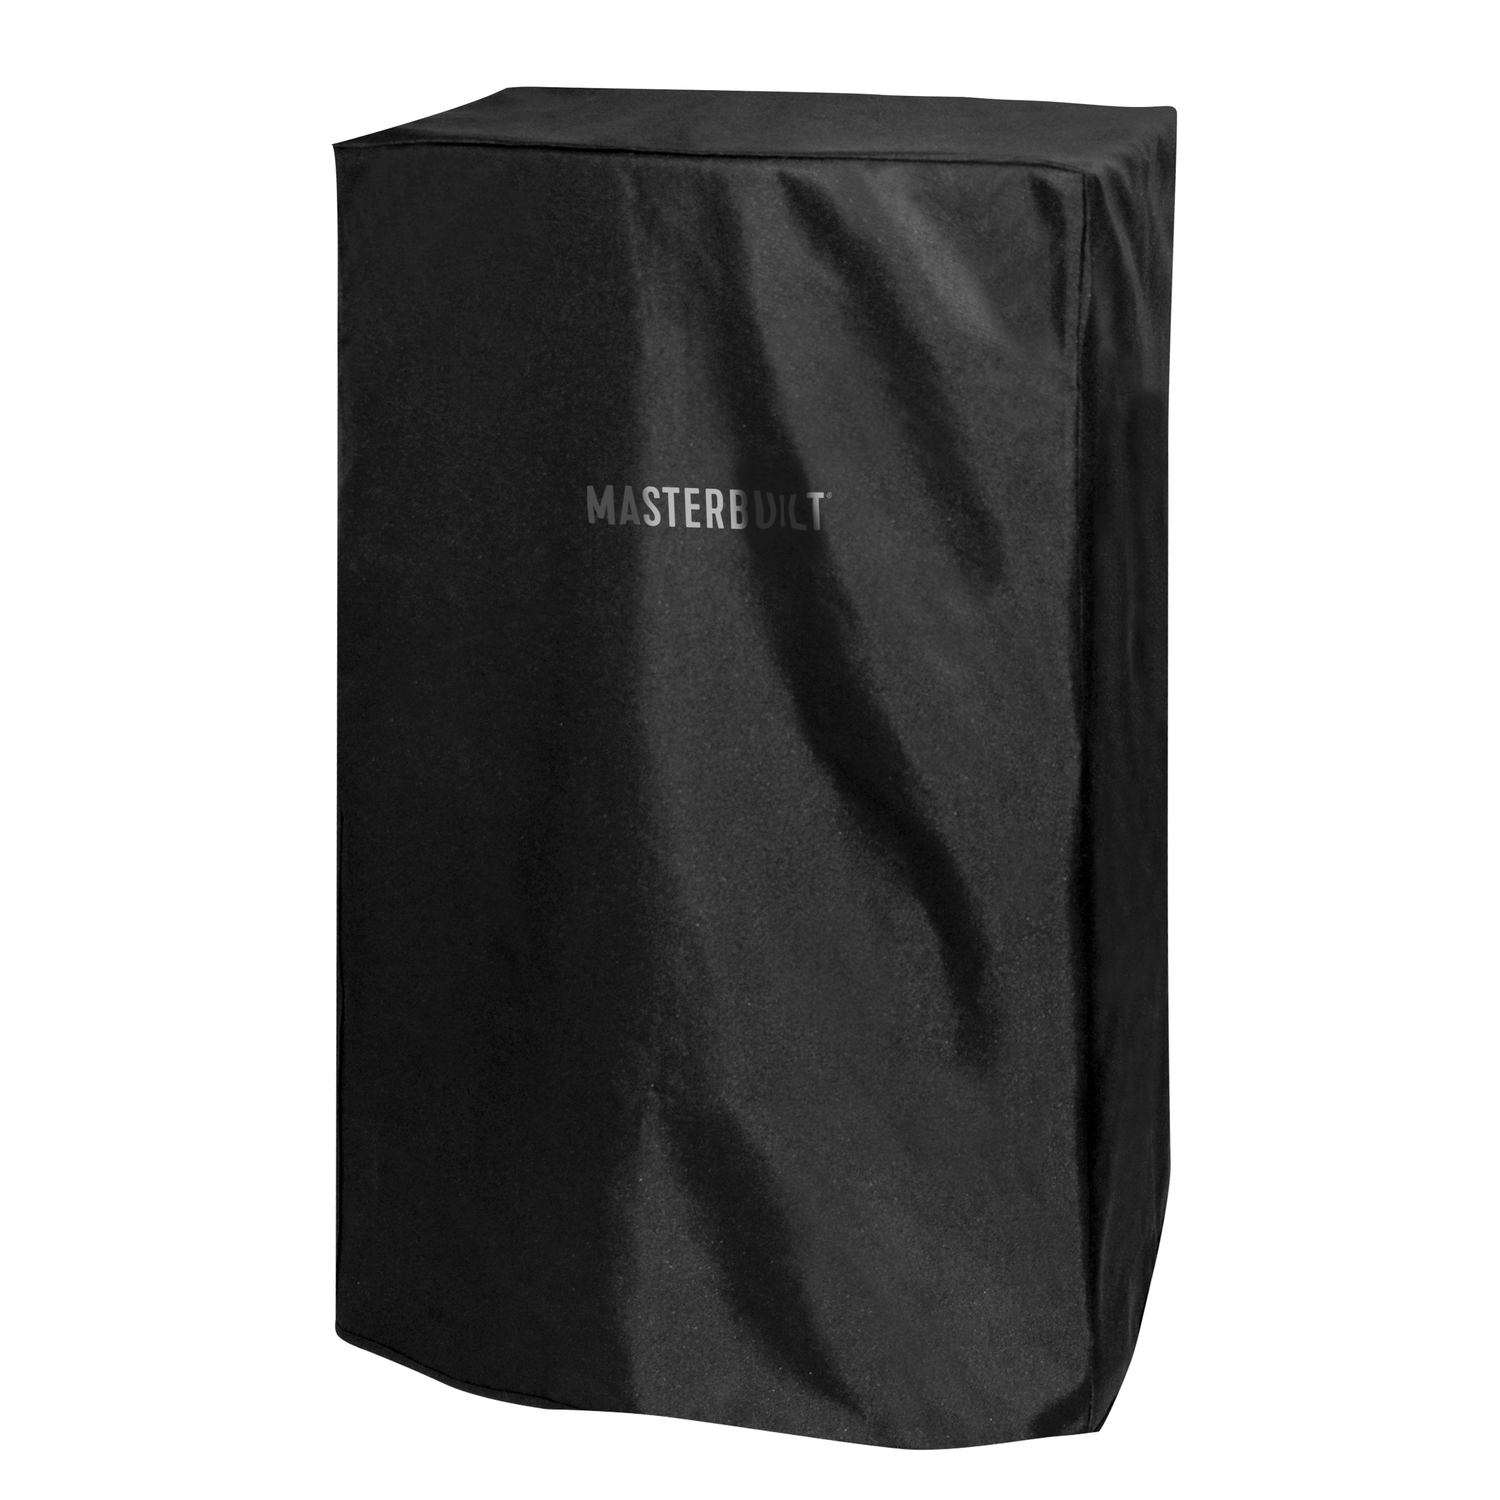 Masterbuilt  Black  Smoker Cover  11.81 in. H x 1.22 in. D x 11.42 in. W For 30 in. Electric Digital